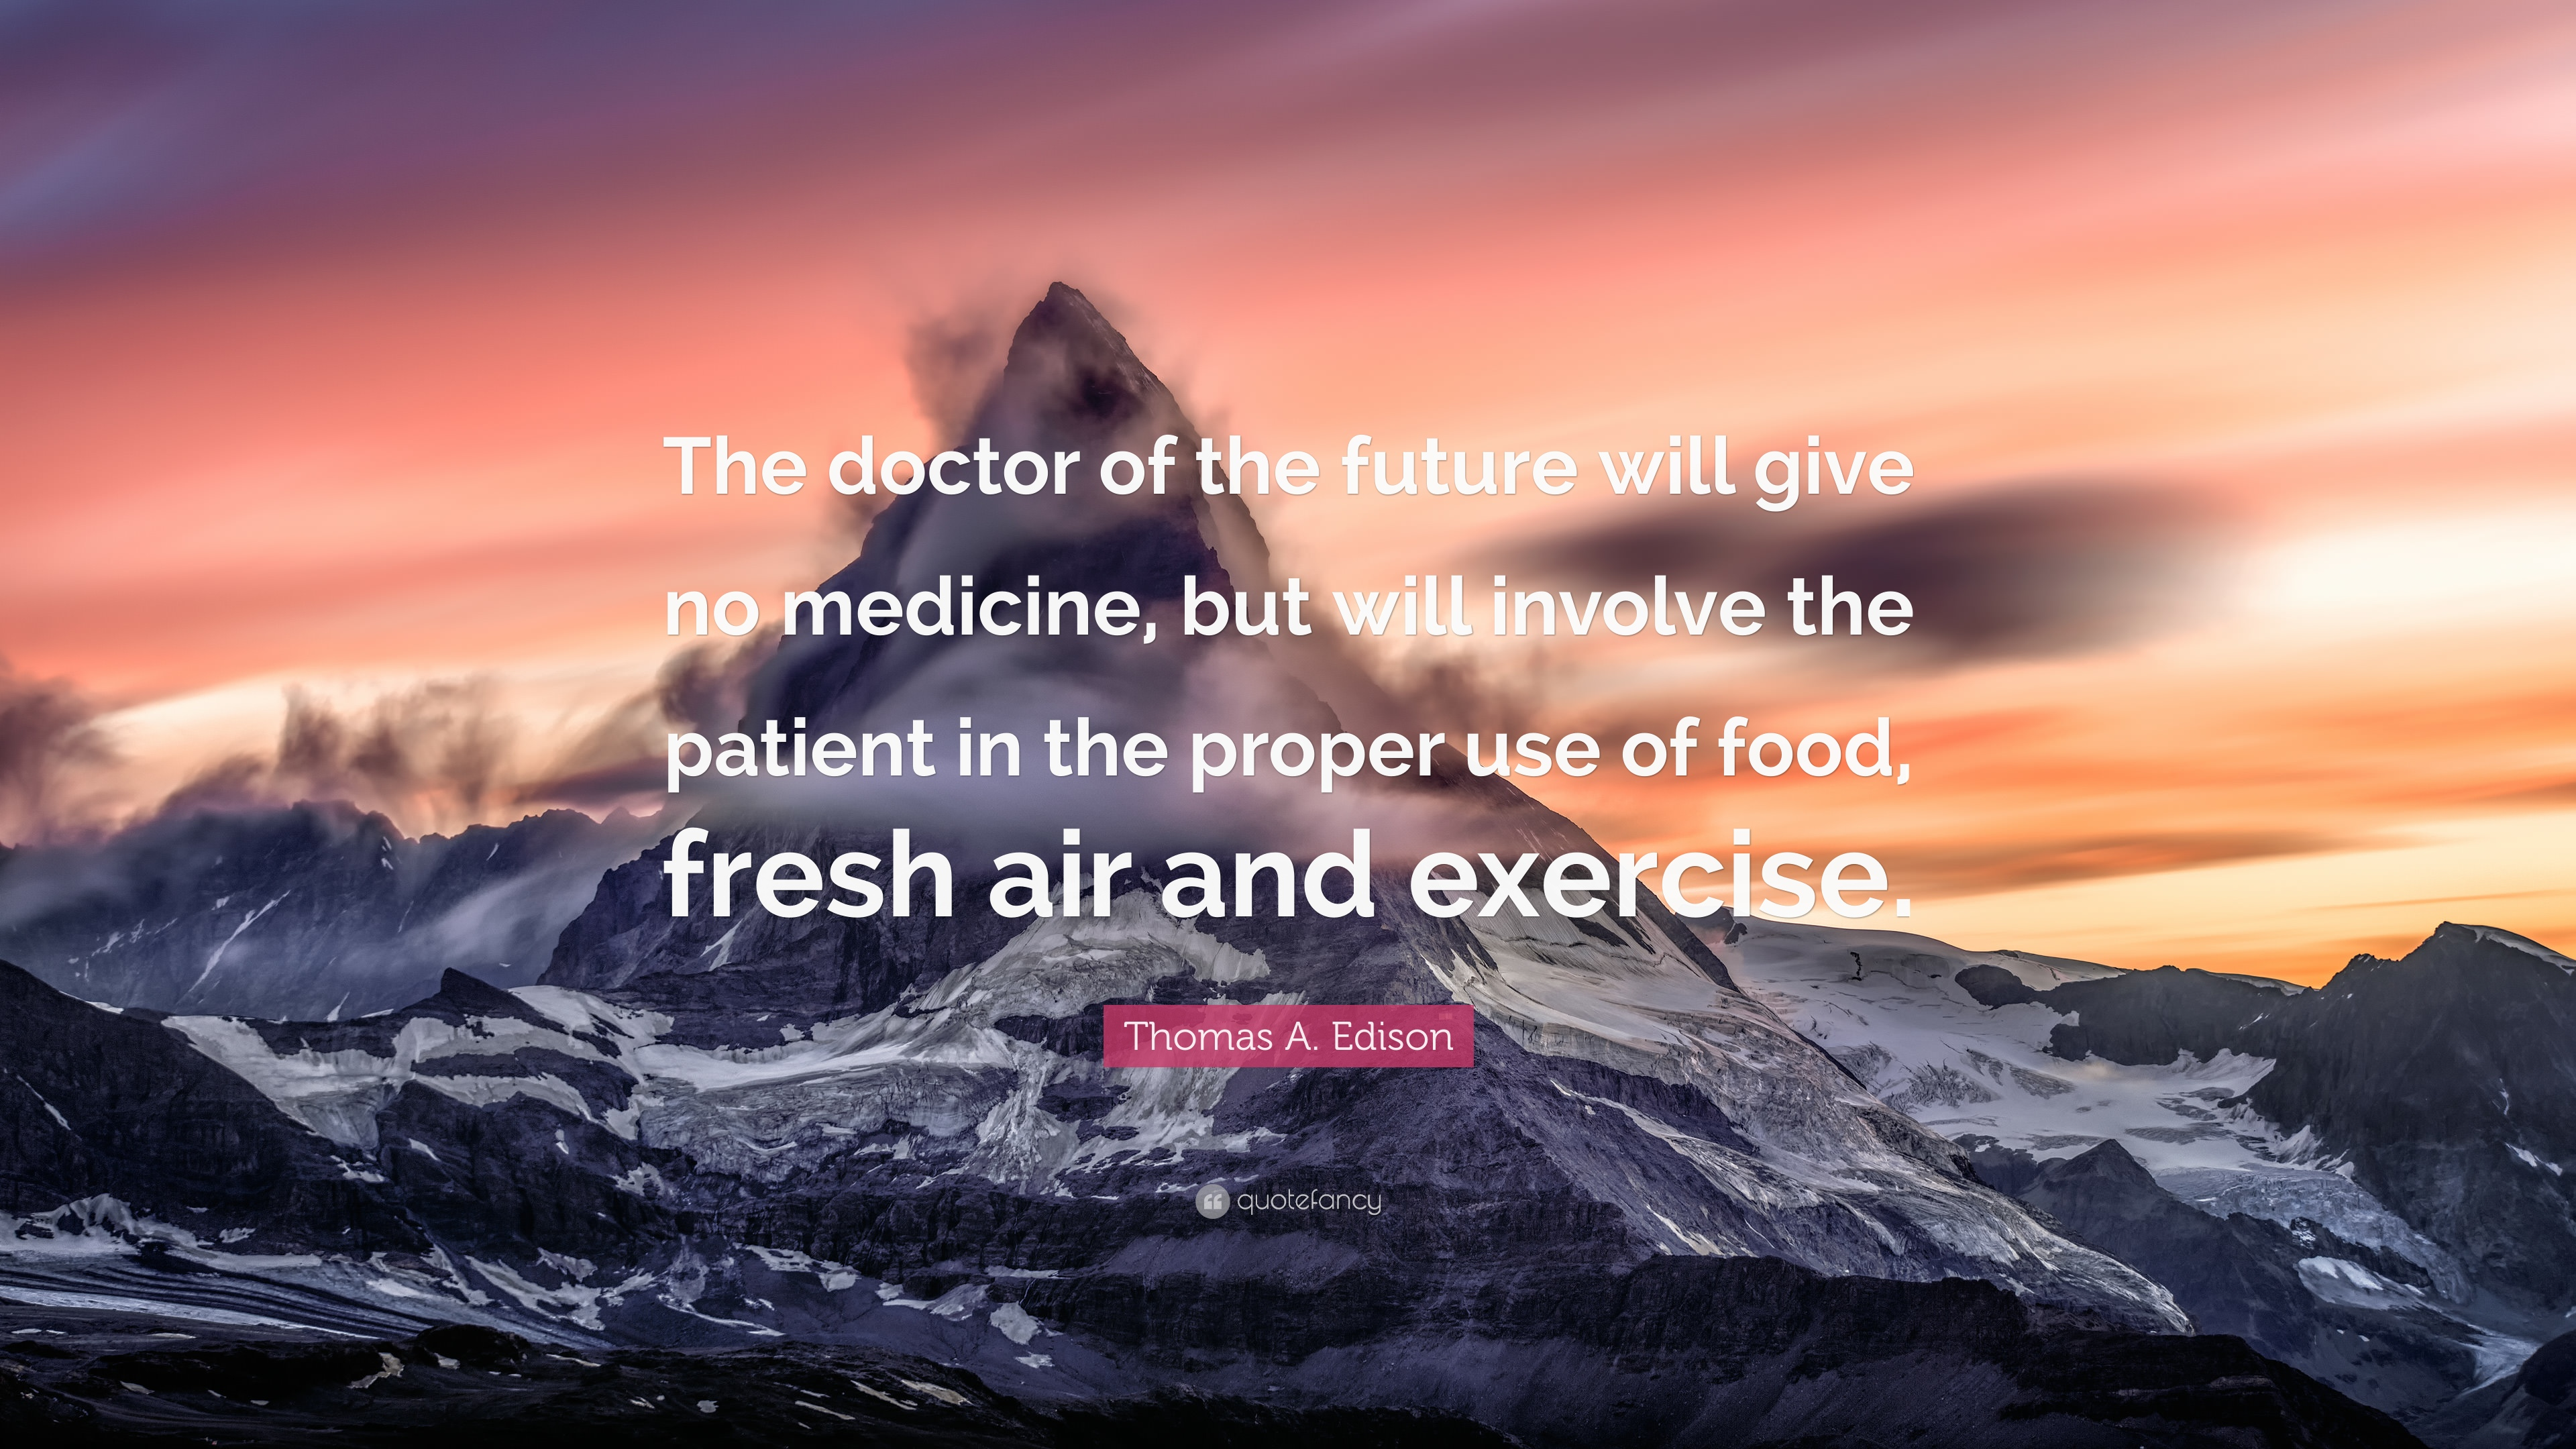 Thomas A Edison Quote The Doctor Of The Future Will Give No